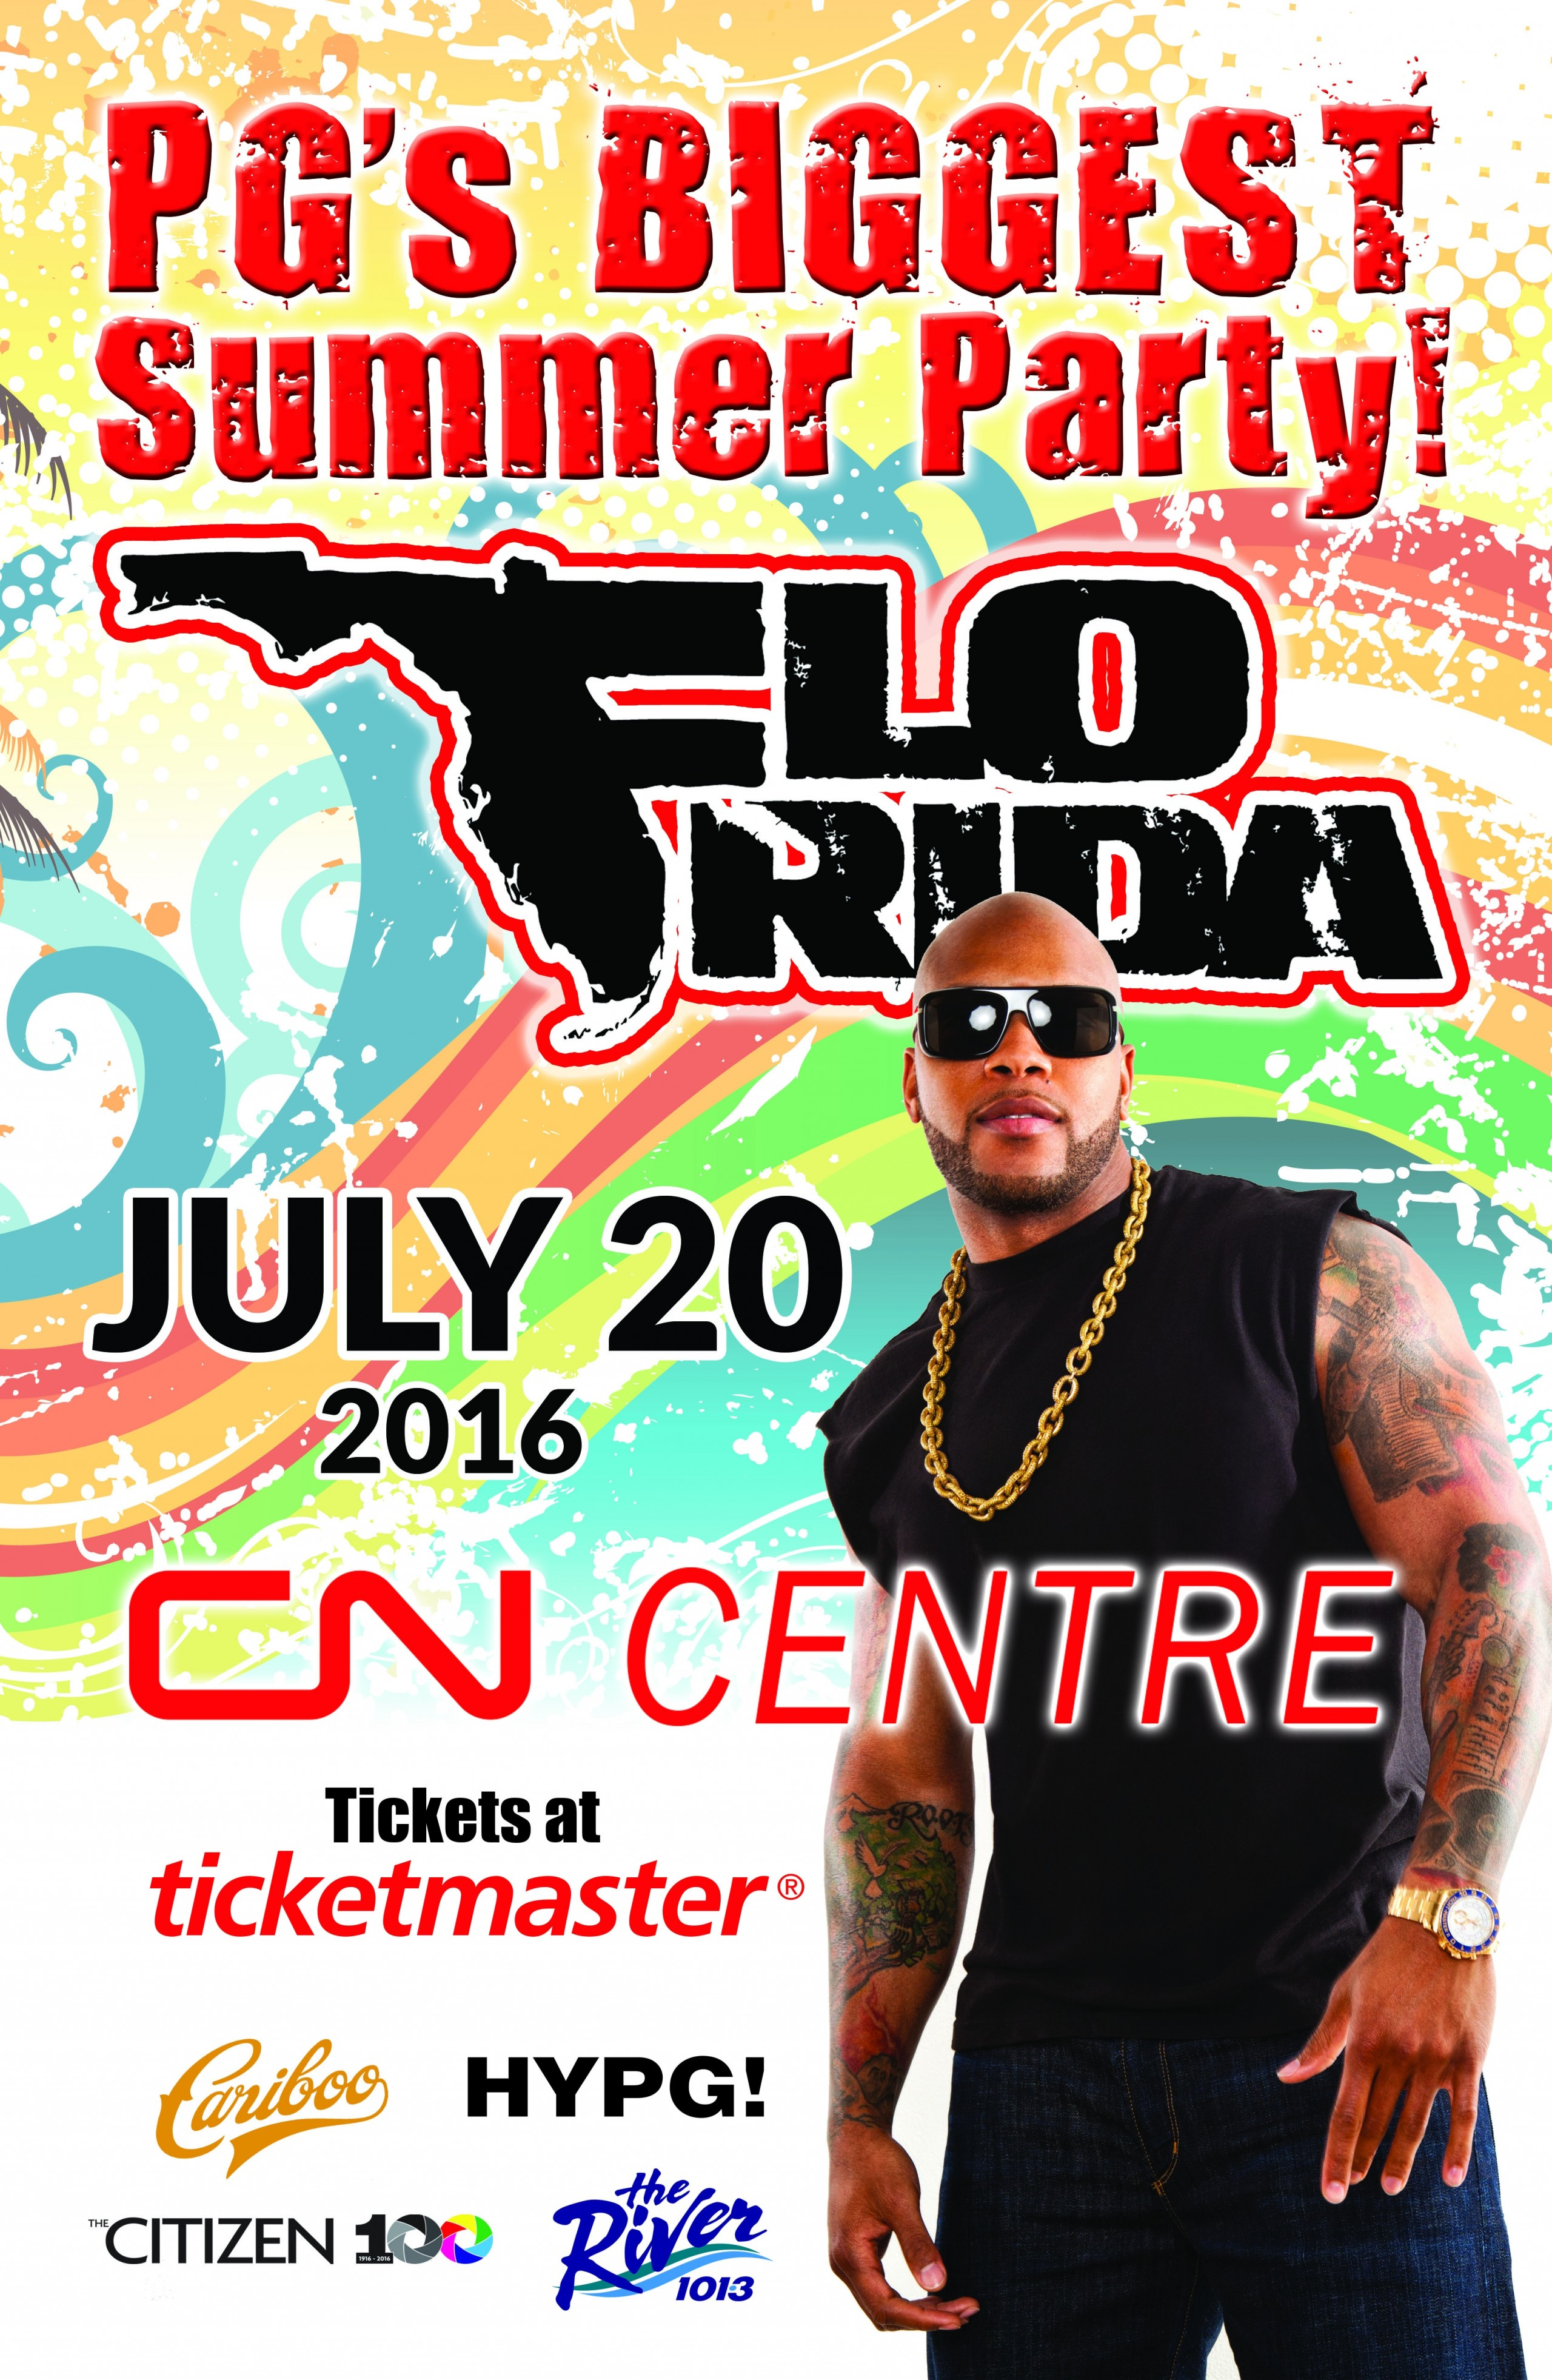 PG's Biggest Summer Party #CityofPG